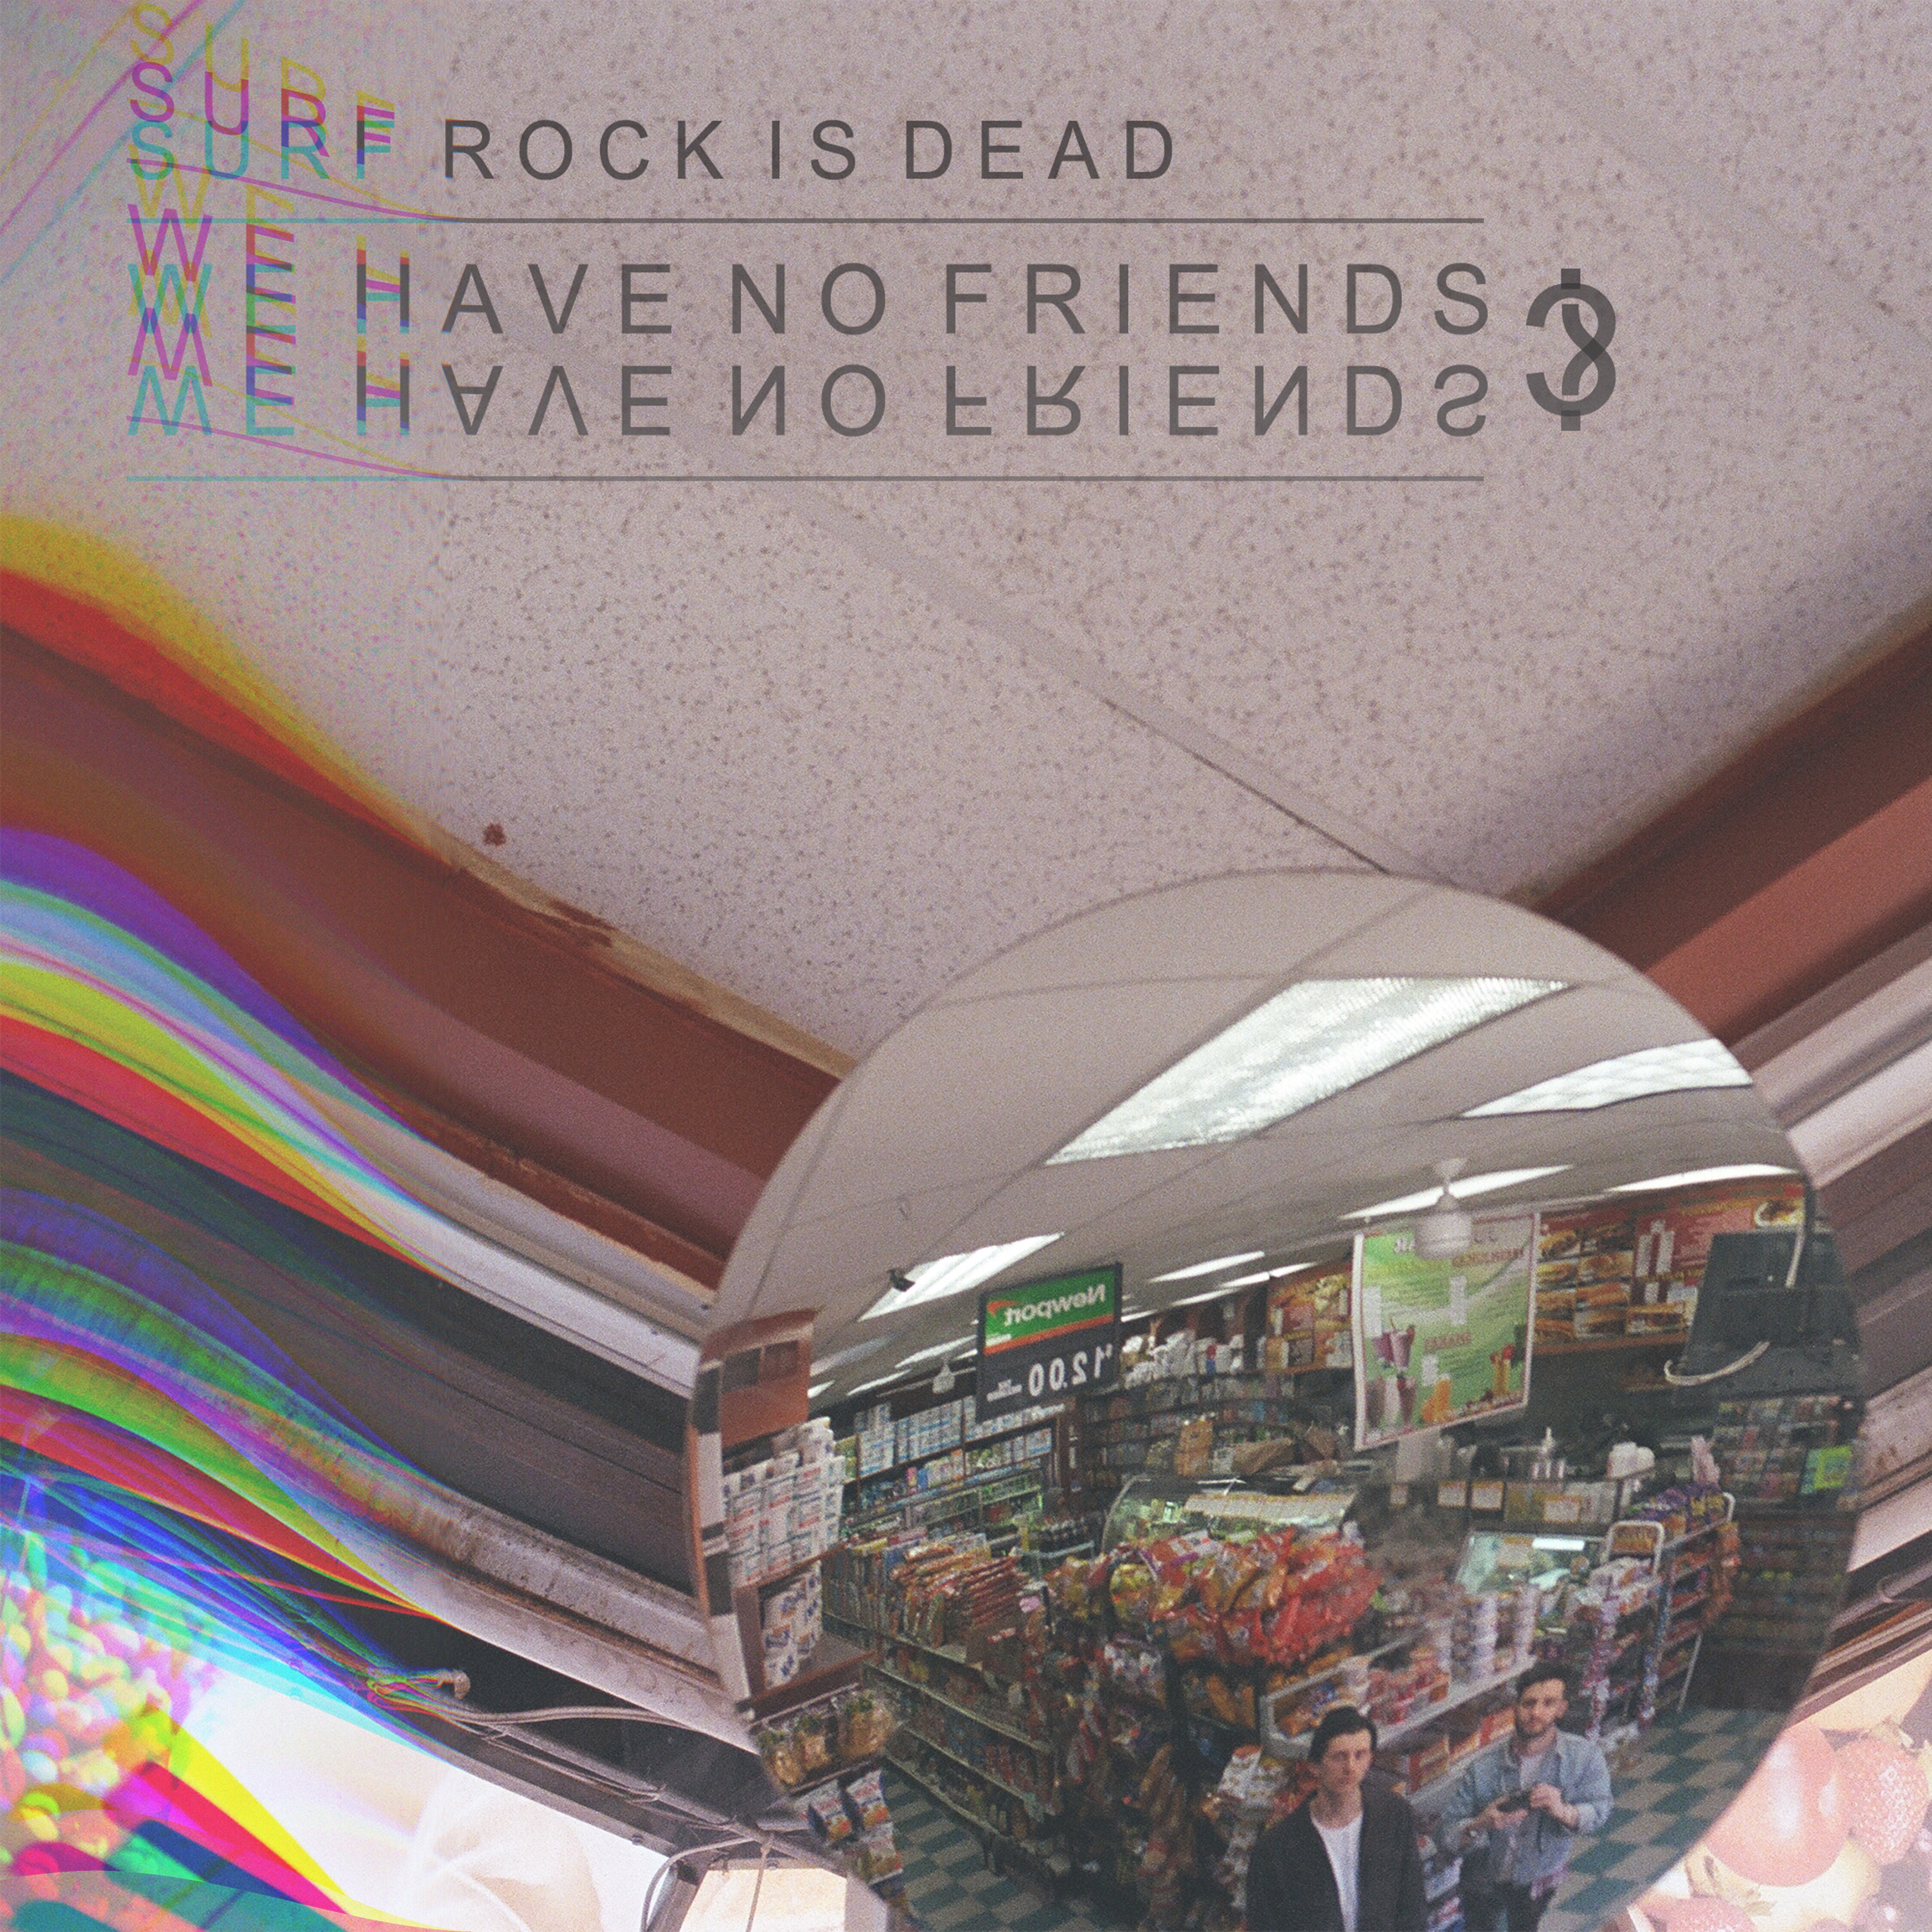 The Native Sound - Surf Rock is Dead – We Have No Friends? EP